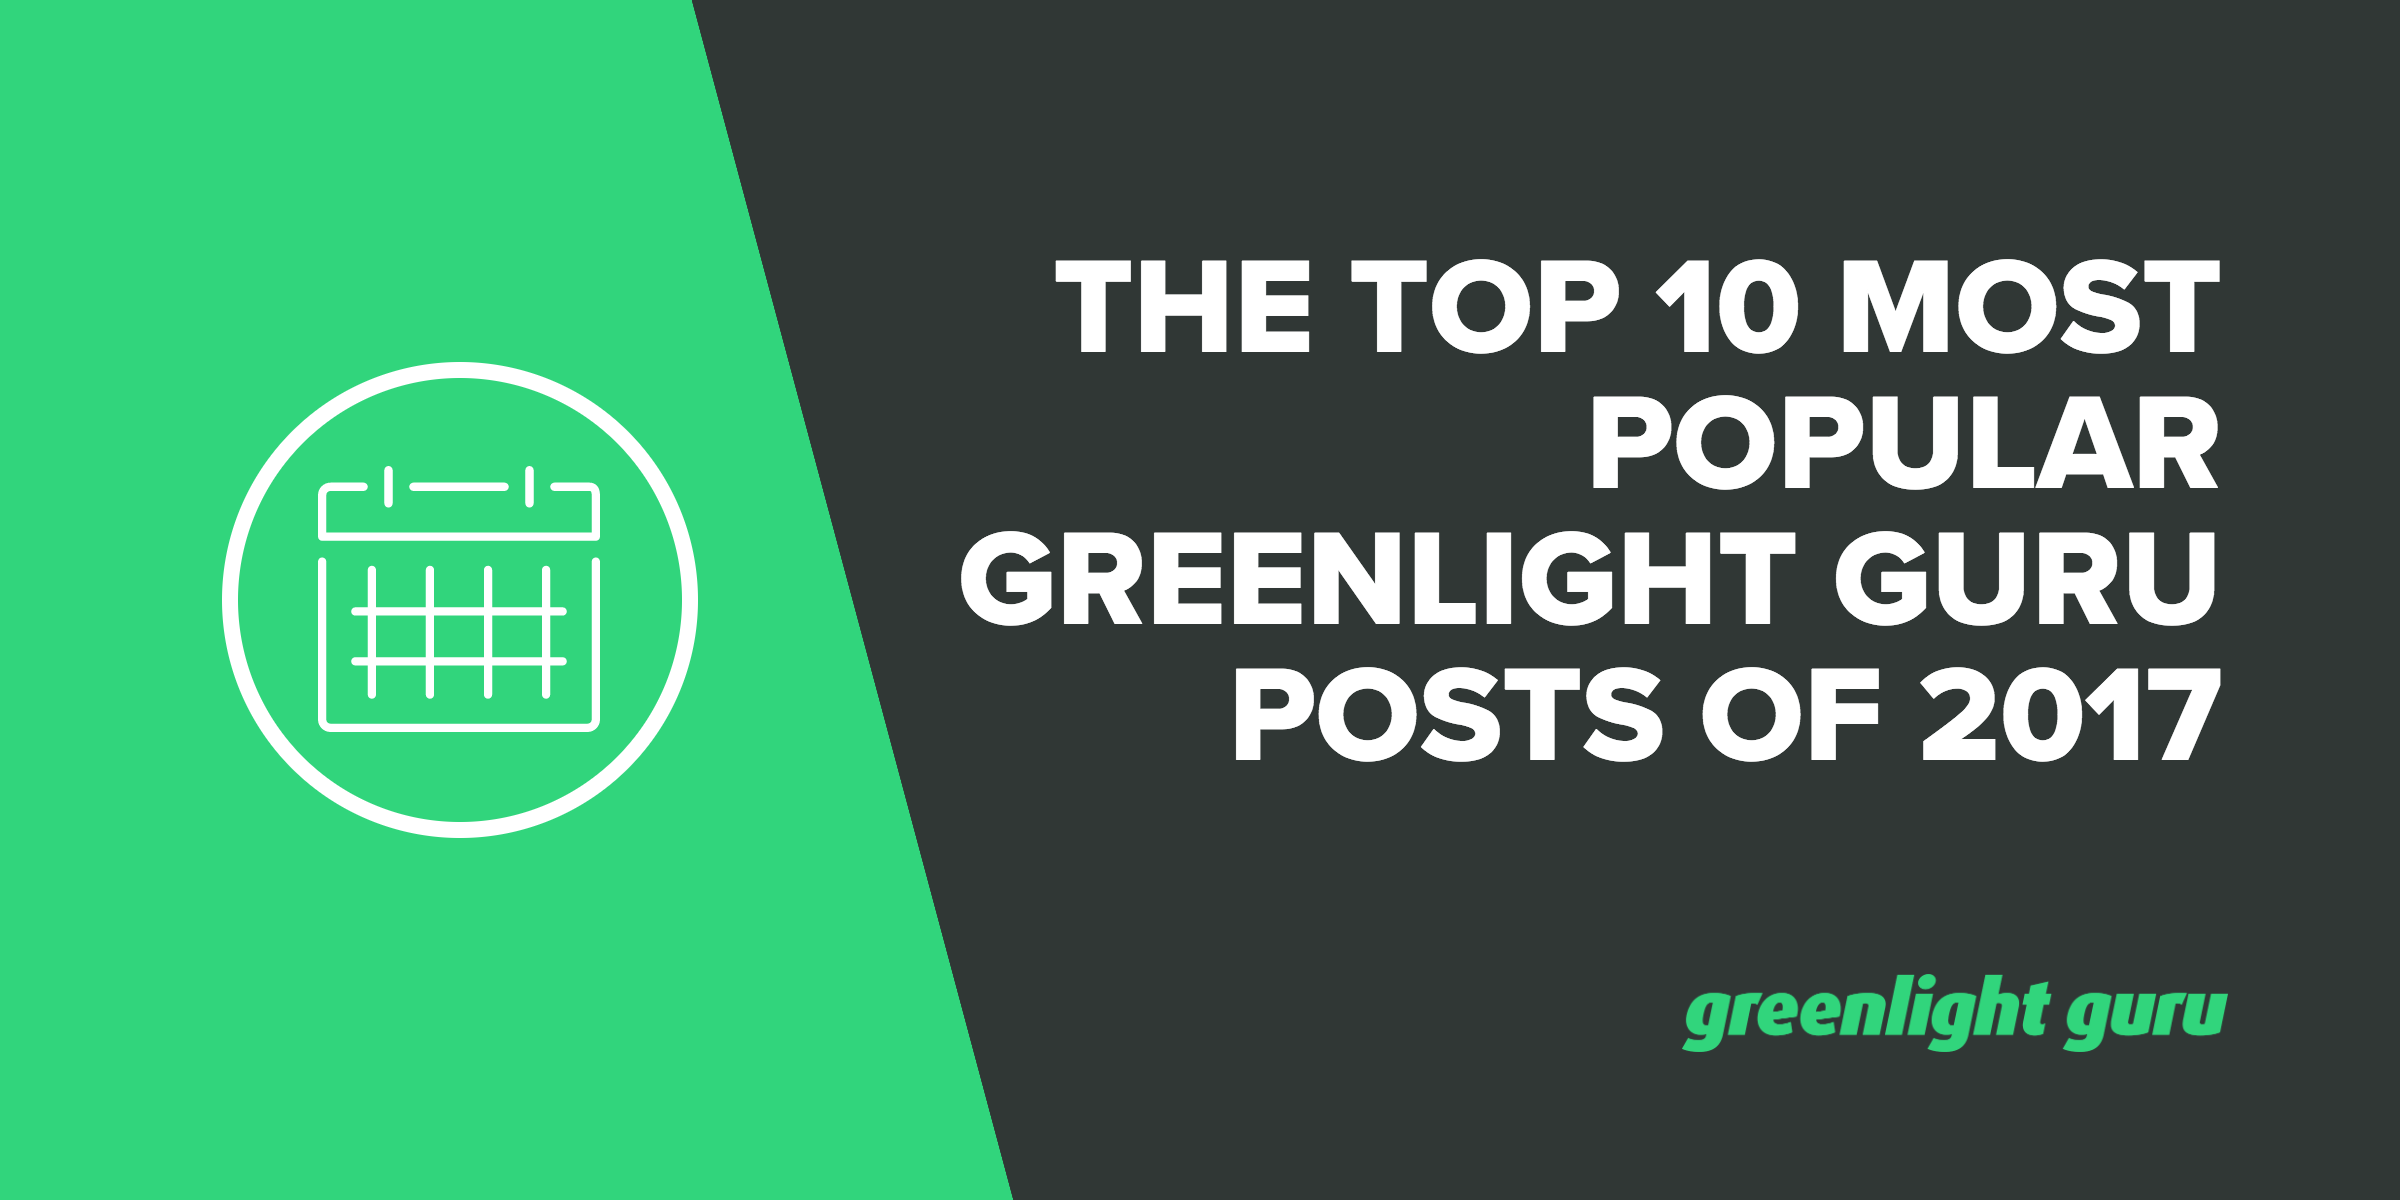 Top 10 Most Popular Greenlight Guru Medical Devices Posts of 2017 - Featured Image